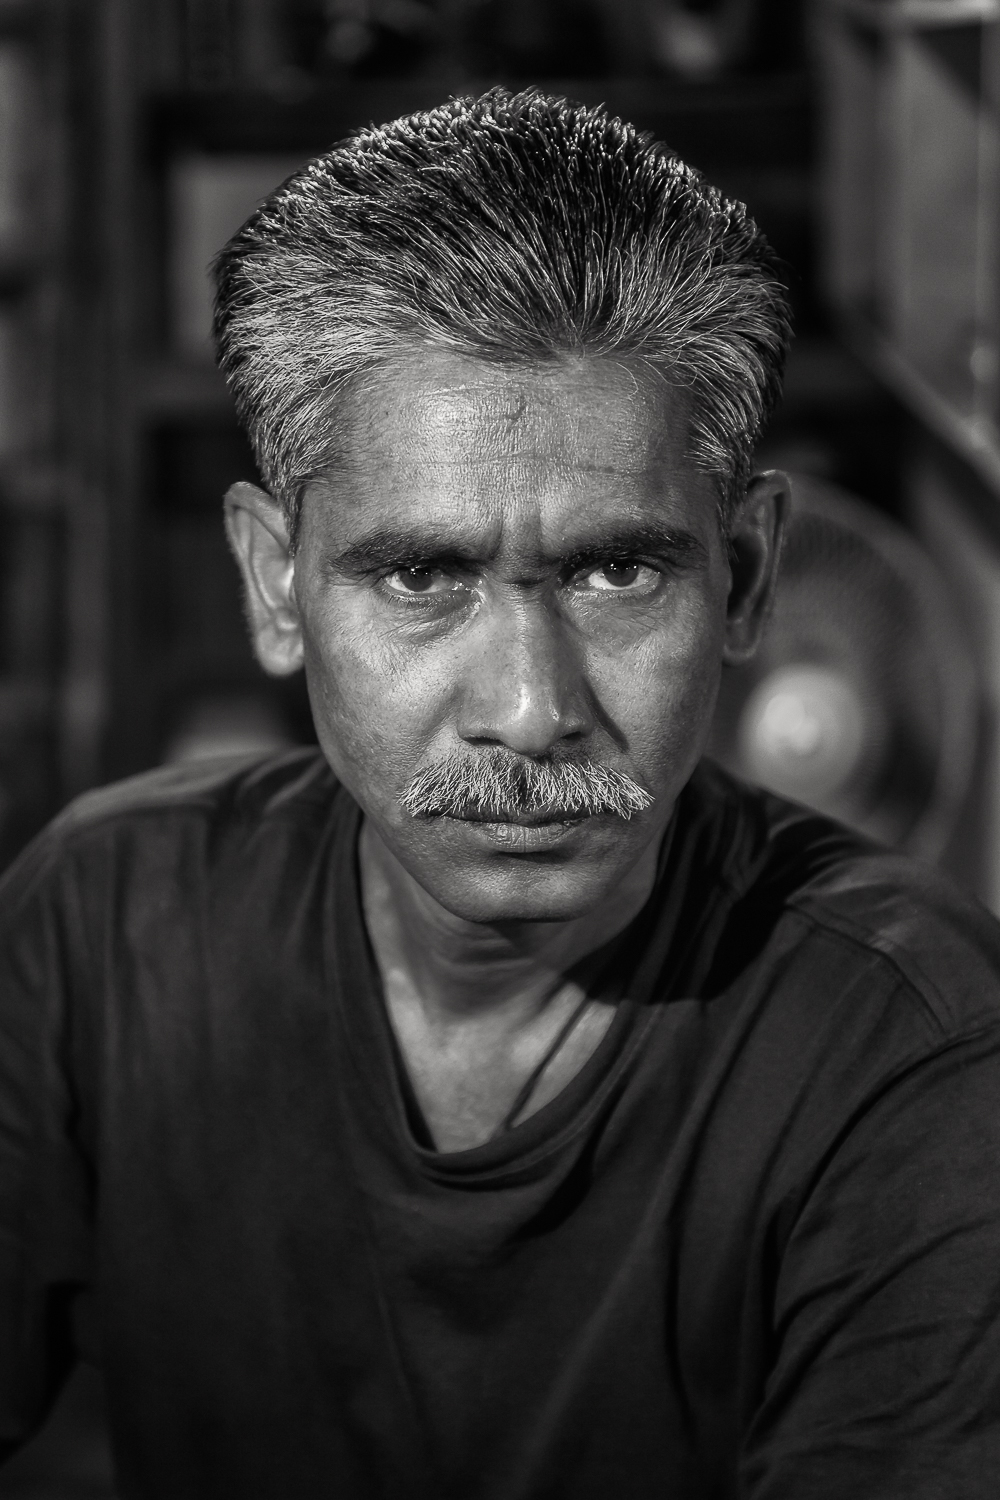 And What is Wisdom Father? A black and white portrait of a father figure in Kolkata, India.